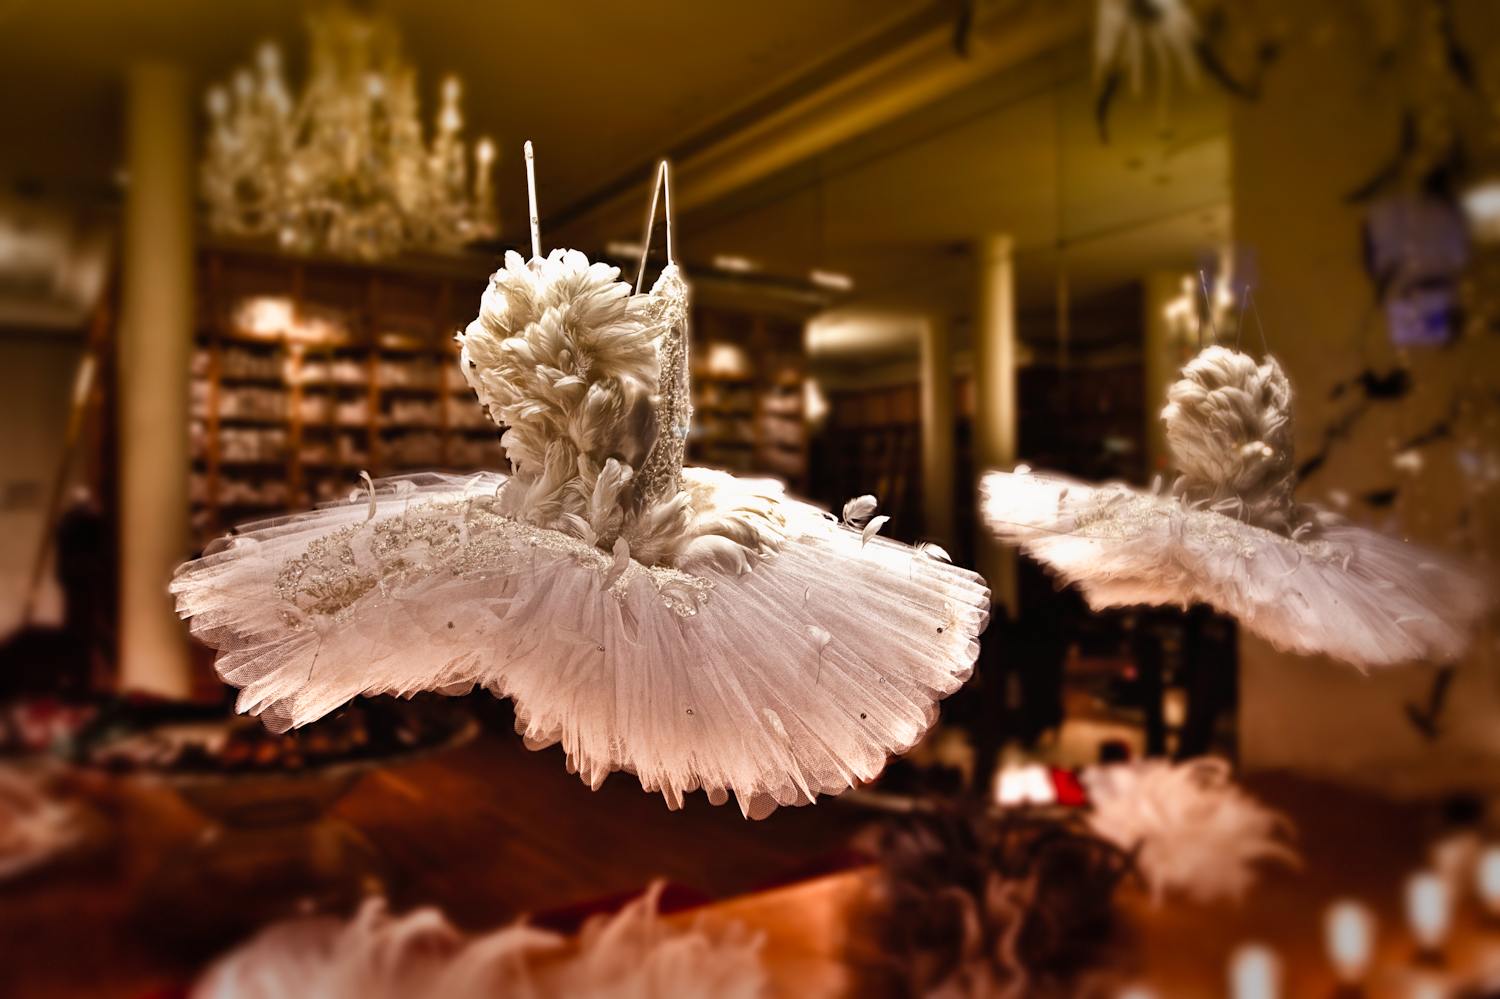 two Repetto tutus in the window